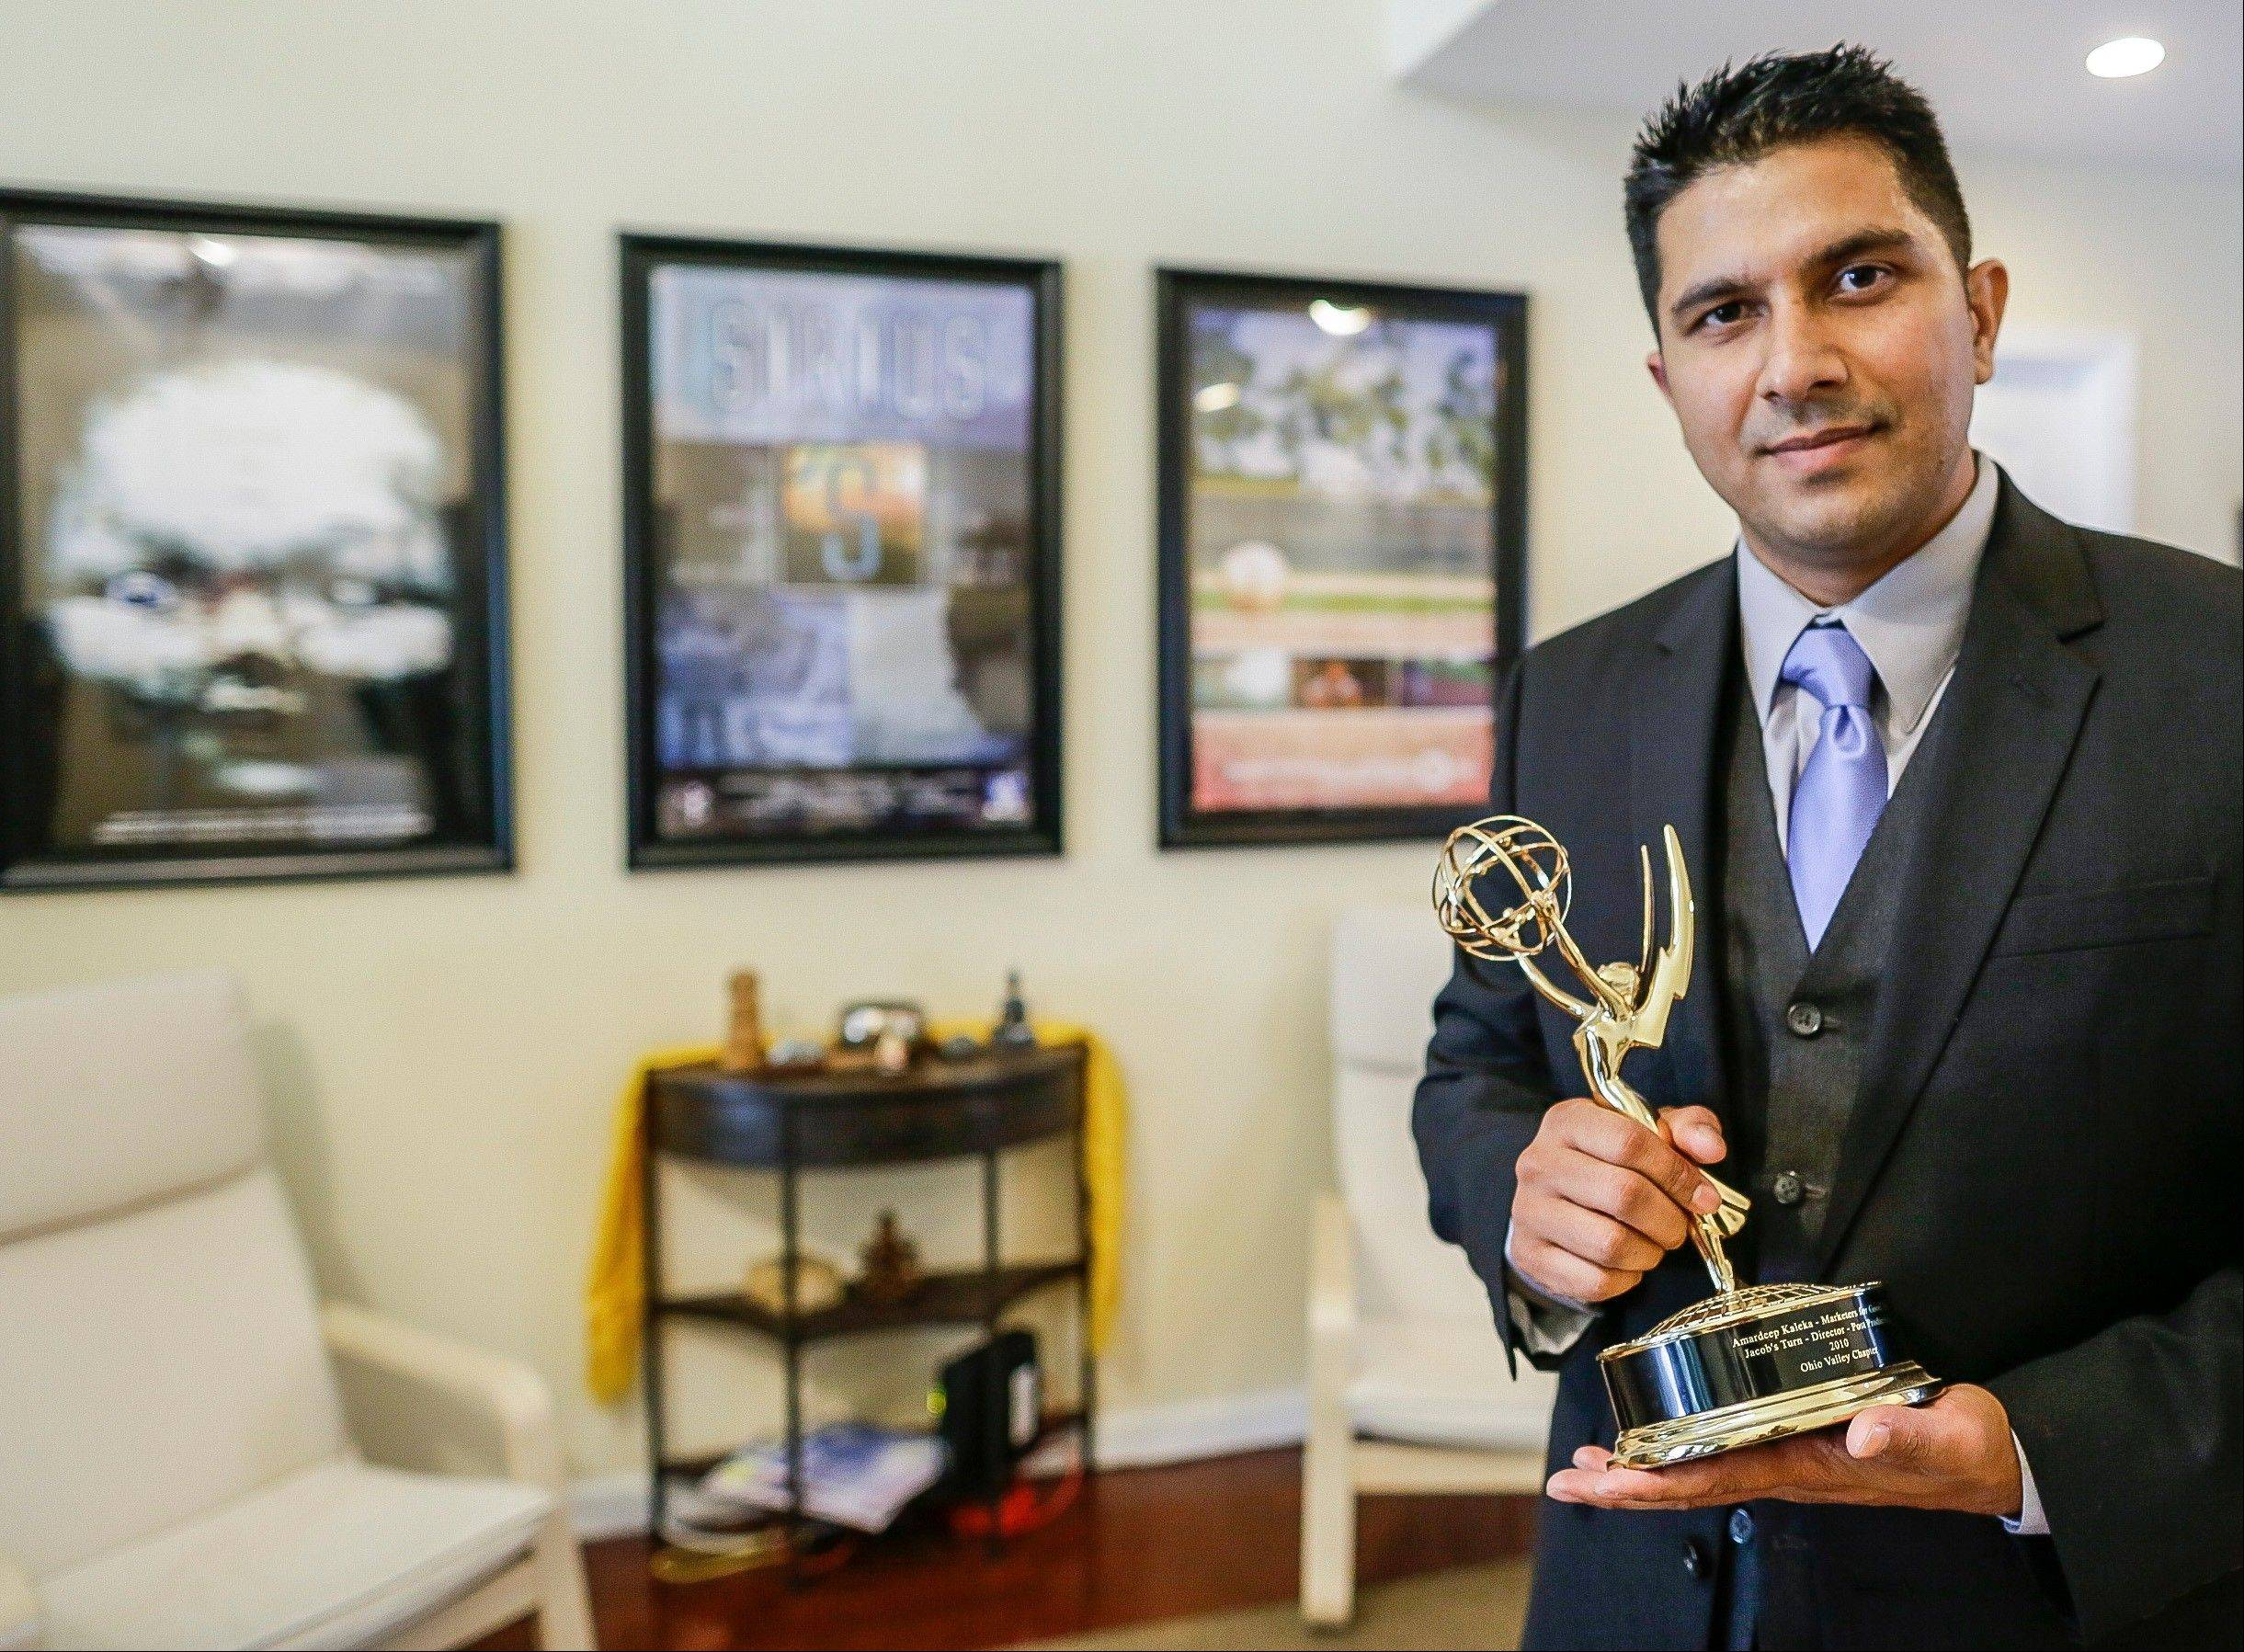 In this Thursday, Oct. 10, 2013 photo, film director and producer Amardeep Kaleka poses for a photo at Neverending Light, his Emmy Award winning film and television production company in Los Angeles. Kaleka, whose father Satwant Singh Kaleka, the president of the Sikh Temple of Wisconsin, was slain at the Oak Creek temple shooting in Milwaukee suburb in 2012, plans to challenge Rep. Paul Ryan in next year's congressional election. Kaleka says he'll file paperwork Wednesday to form an exploratory congressional committee. The 35-year-old Democrat plans to announce his candidacy formally next month.